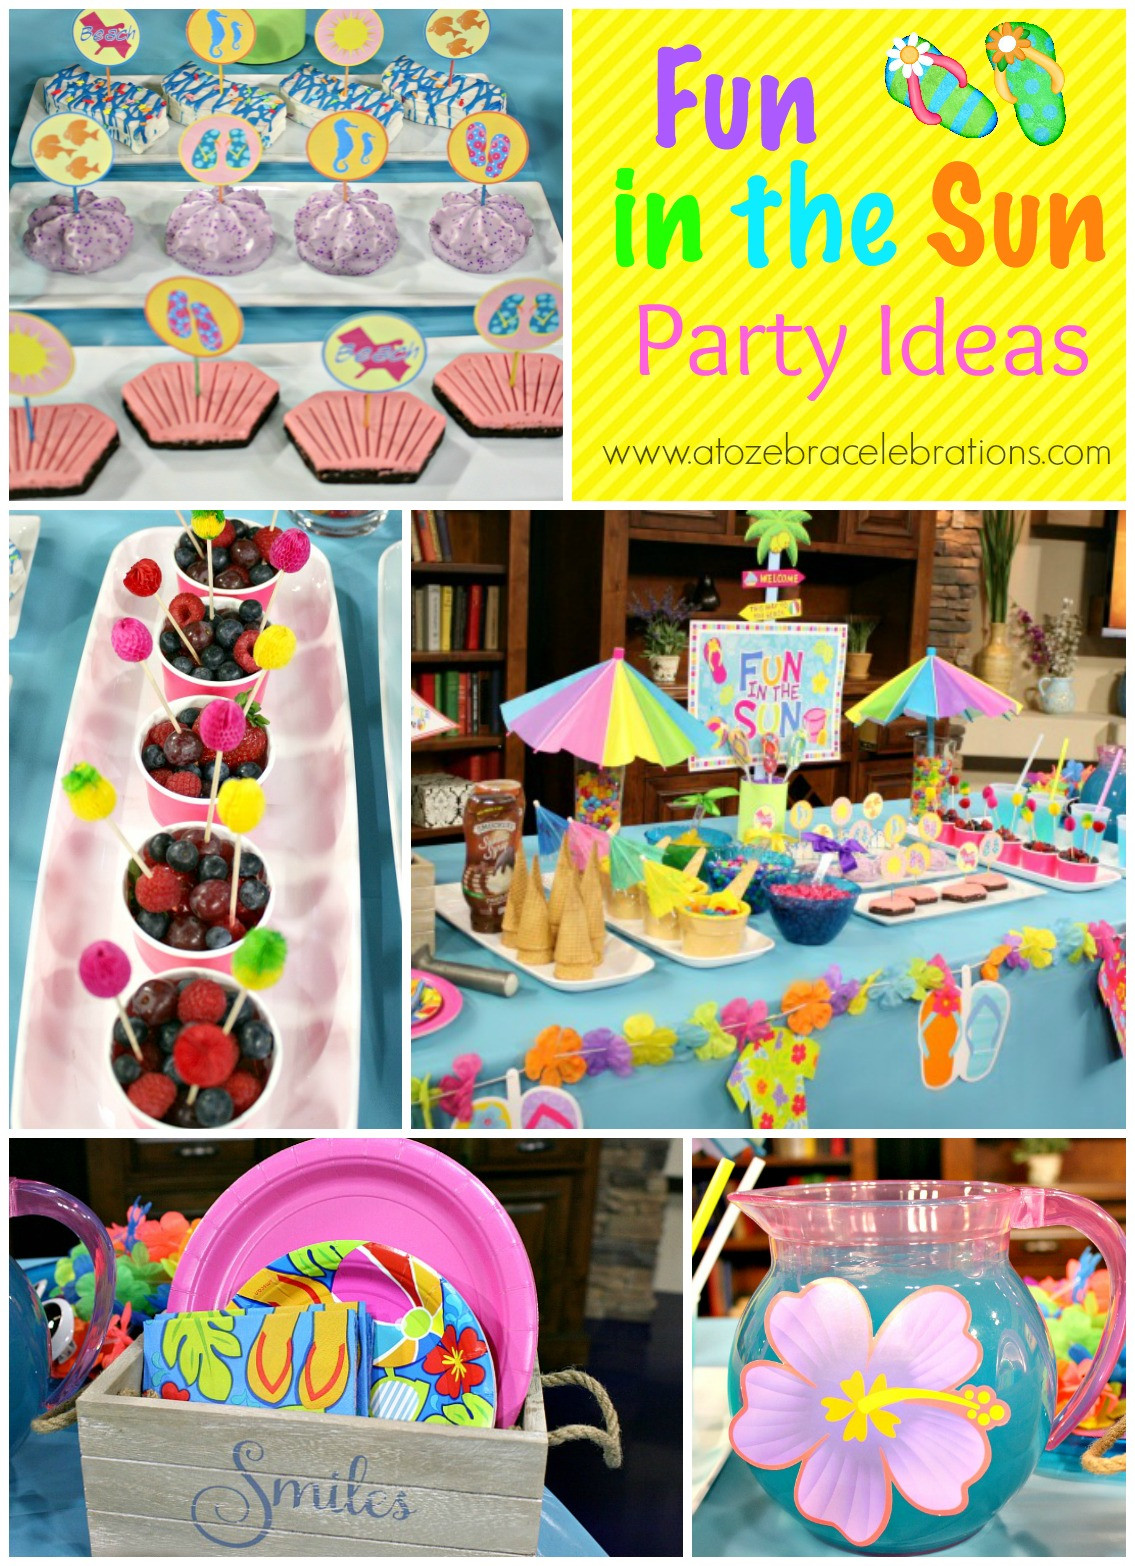 Ideas For Summer Party  Summer Party Ideas – A to Zebra Celebrations